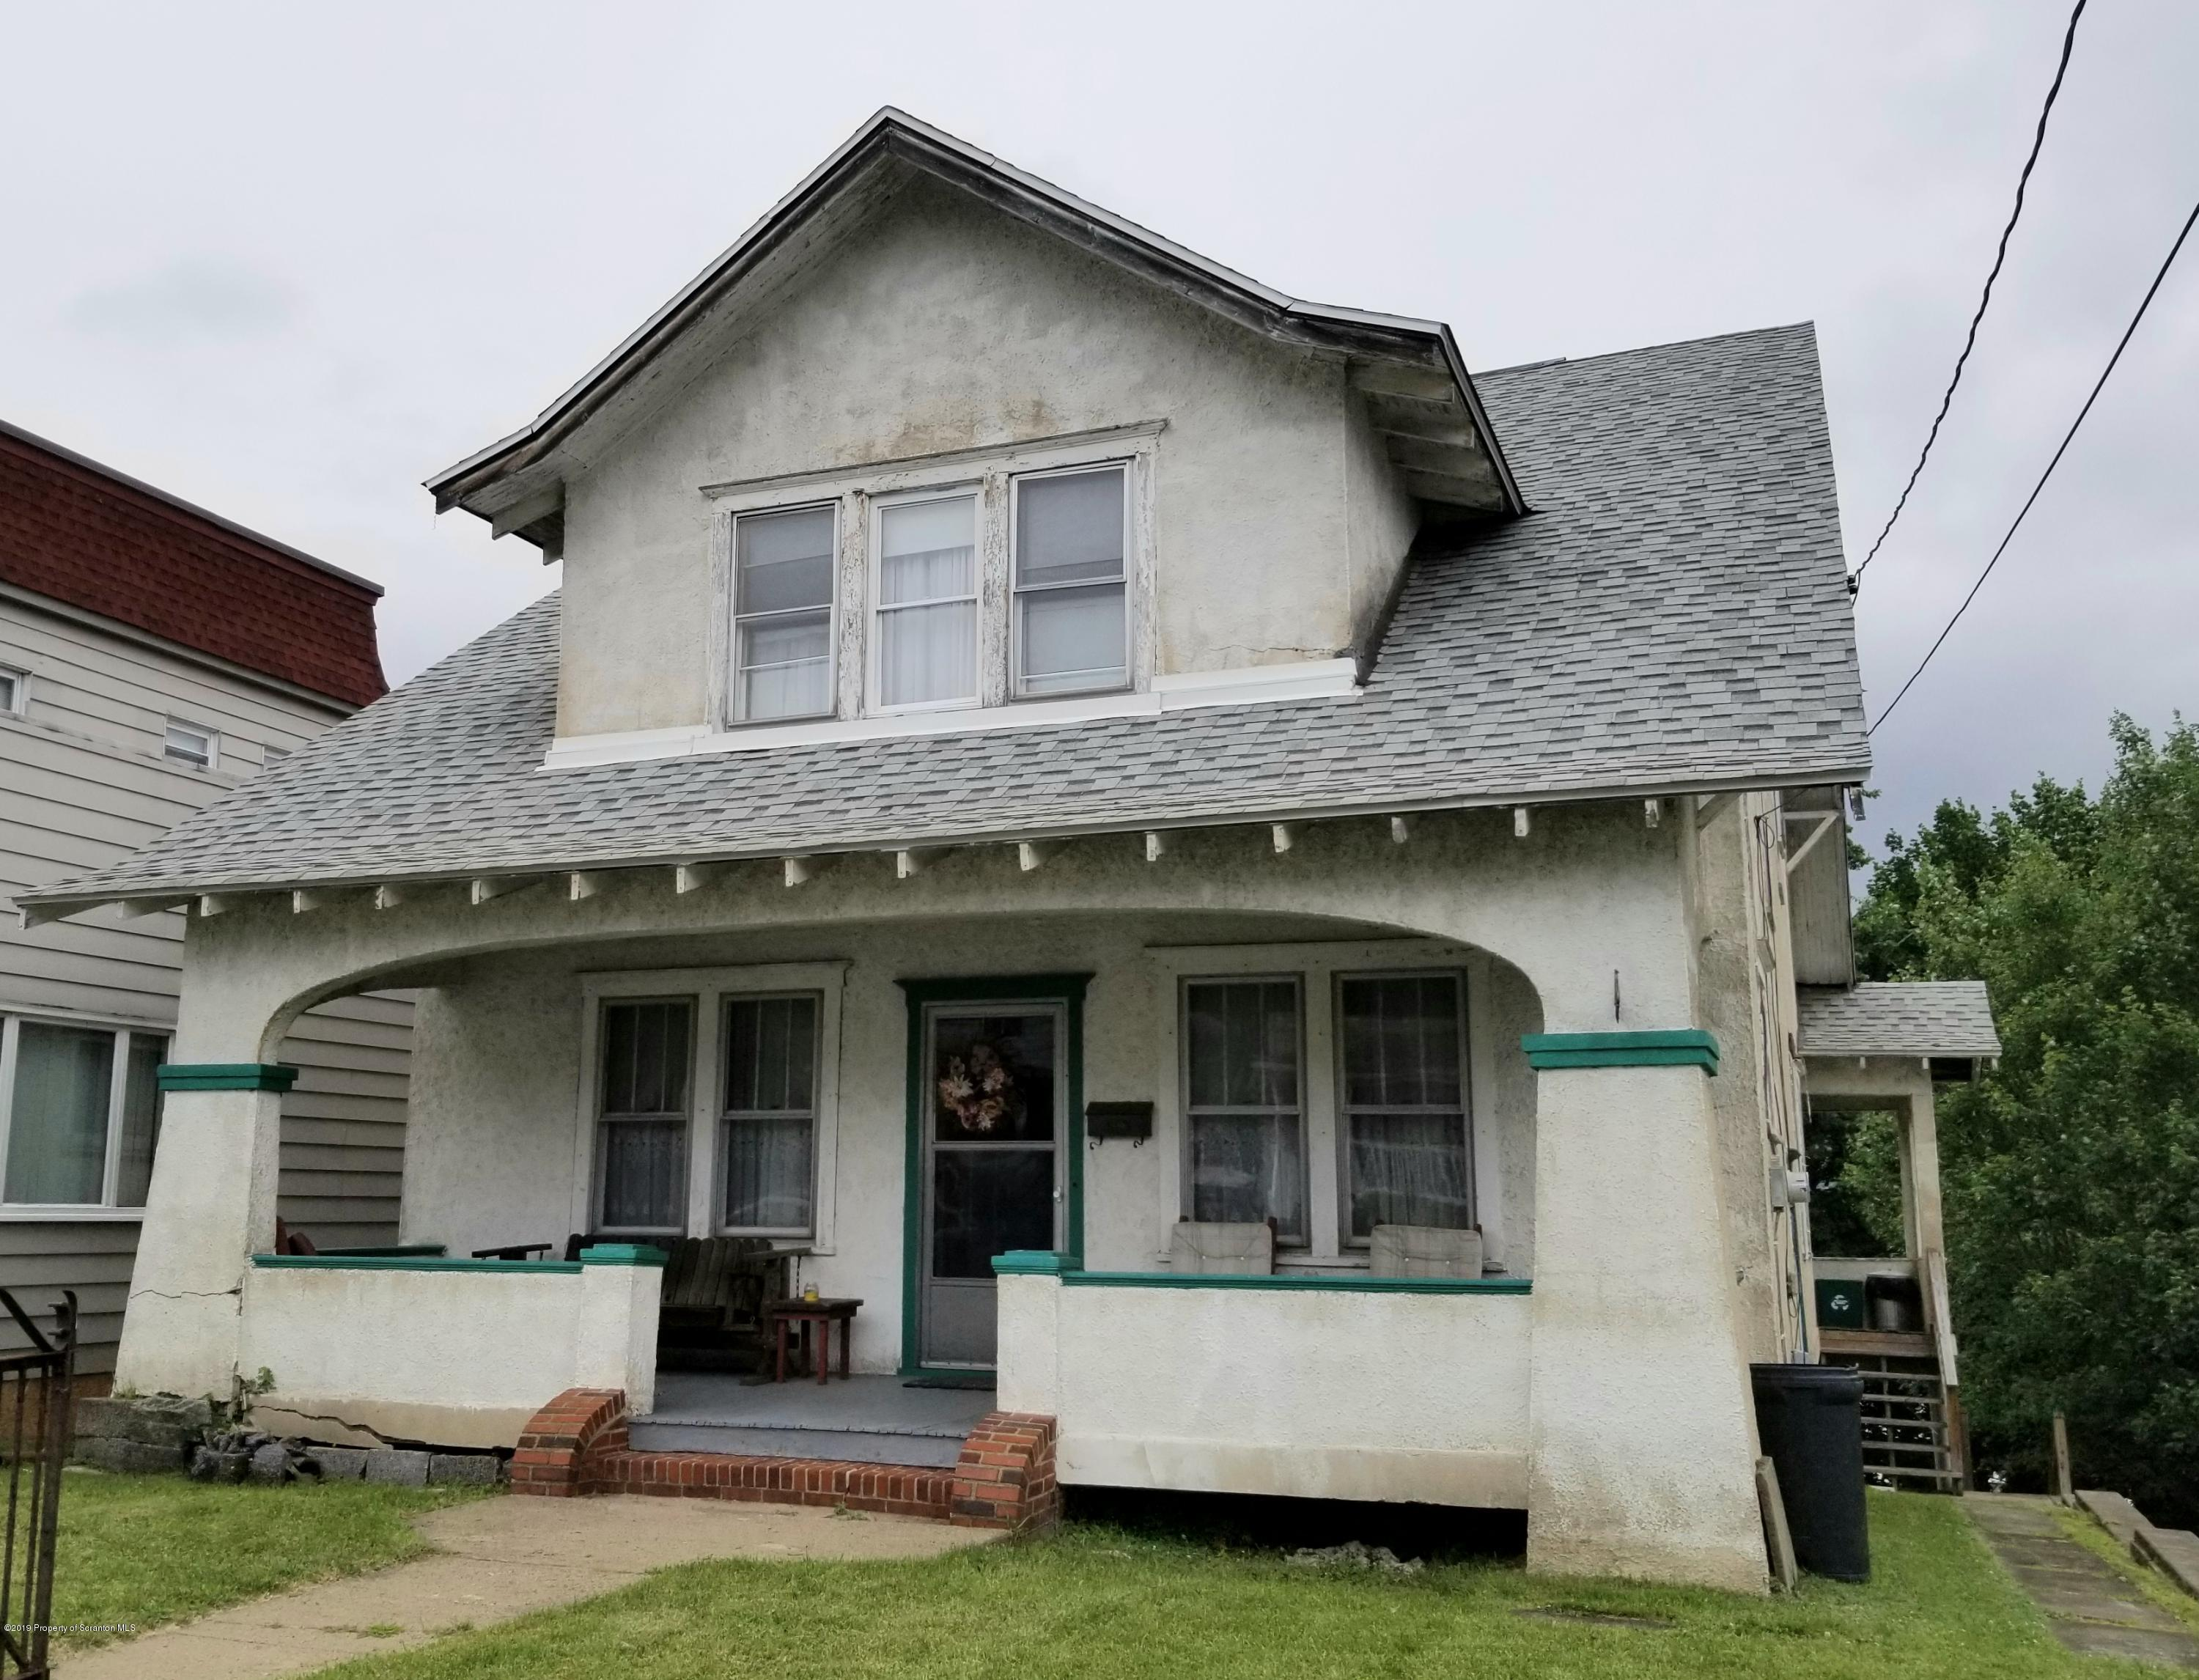 408 2nd Ave, Jessup, Pennsylvania 18434, 3 Bedrooms Bedrooms, 8 Rooms Rooms,1 BathroomBathrooms,Single Family,For Sale,2nd,19-3477